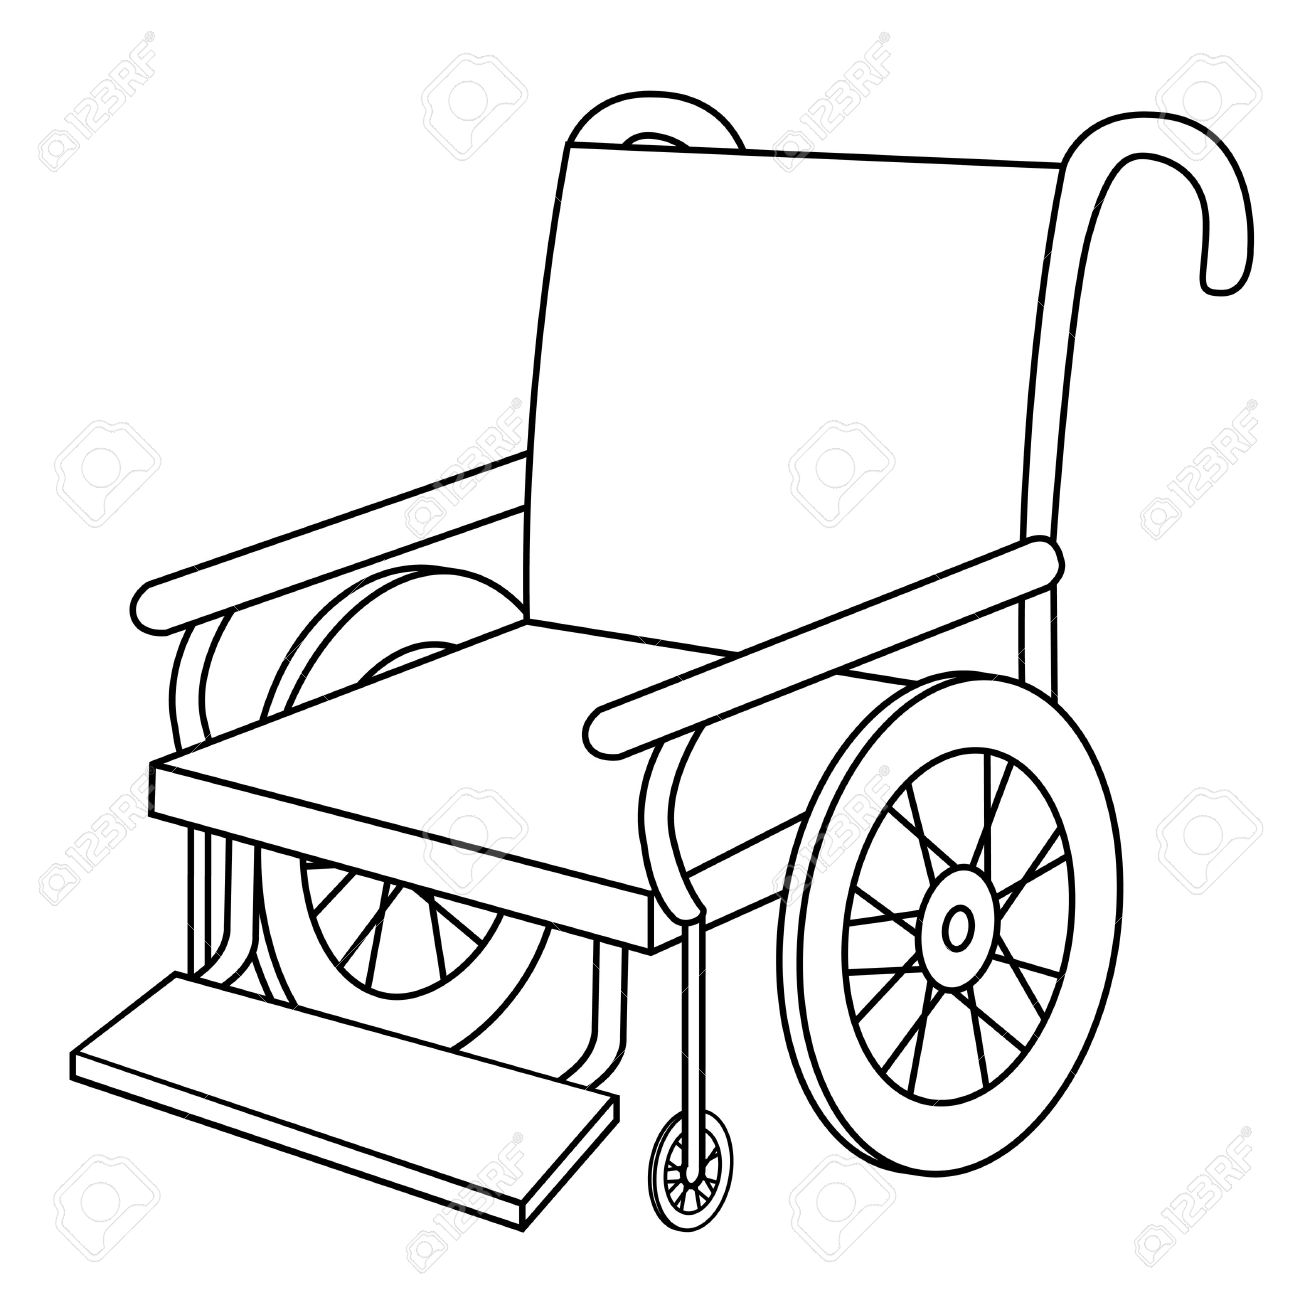 Wheelchair Clipart Black And White.